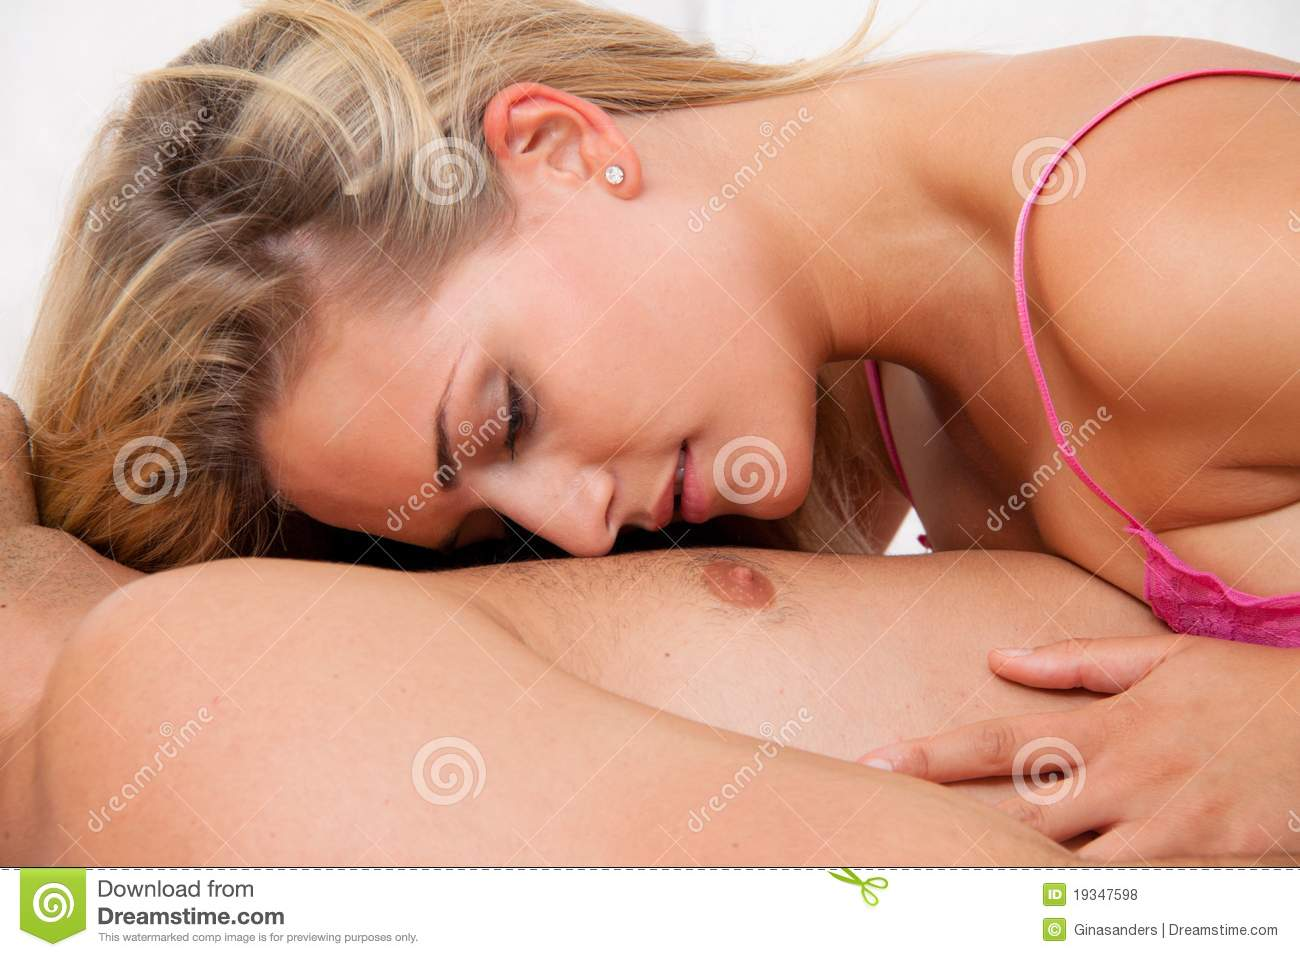 royalty free stock photography man woman couple have sex make love bed image